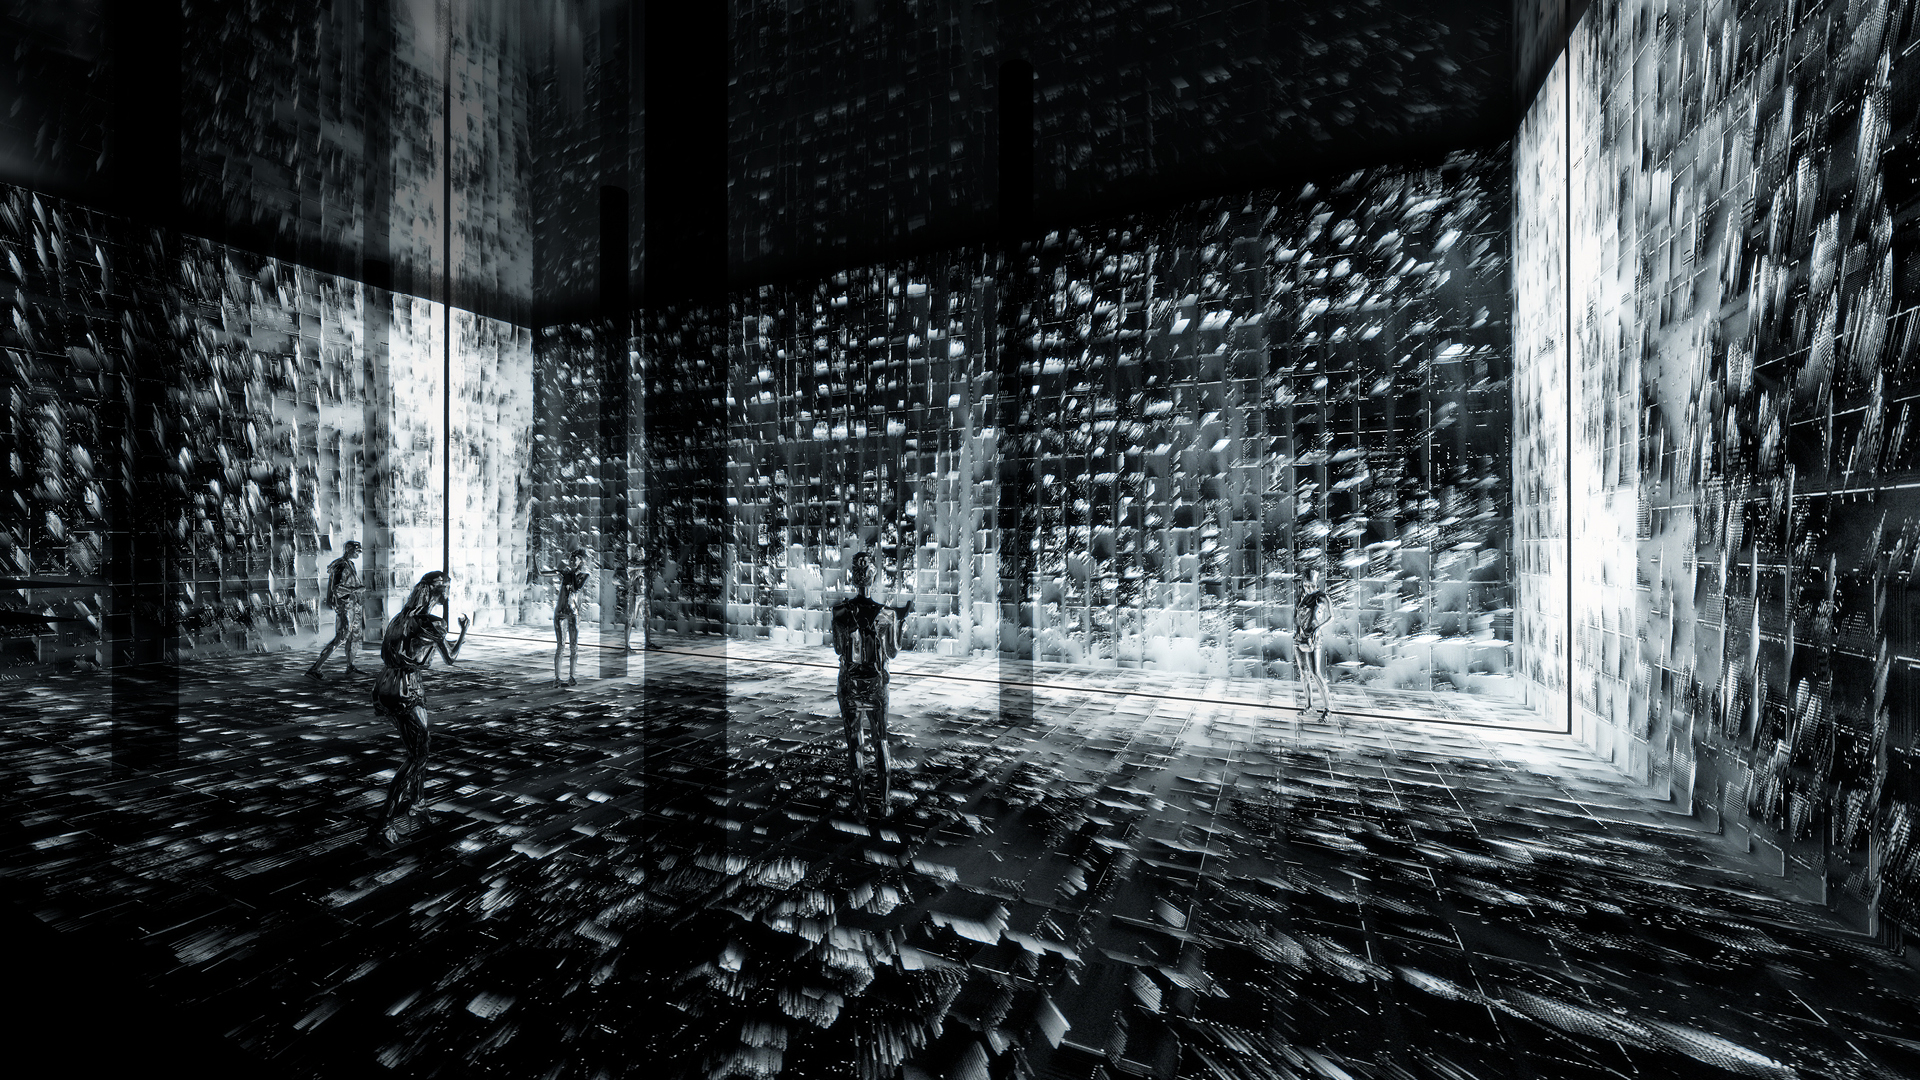 Still 1, Machine Hallucination| Machine Hallucination| Refik Anadol| Artechouse| STIR